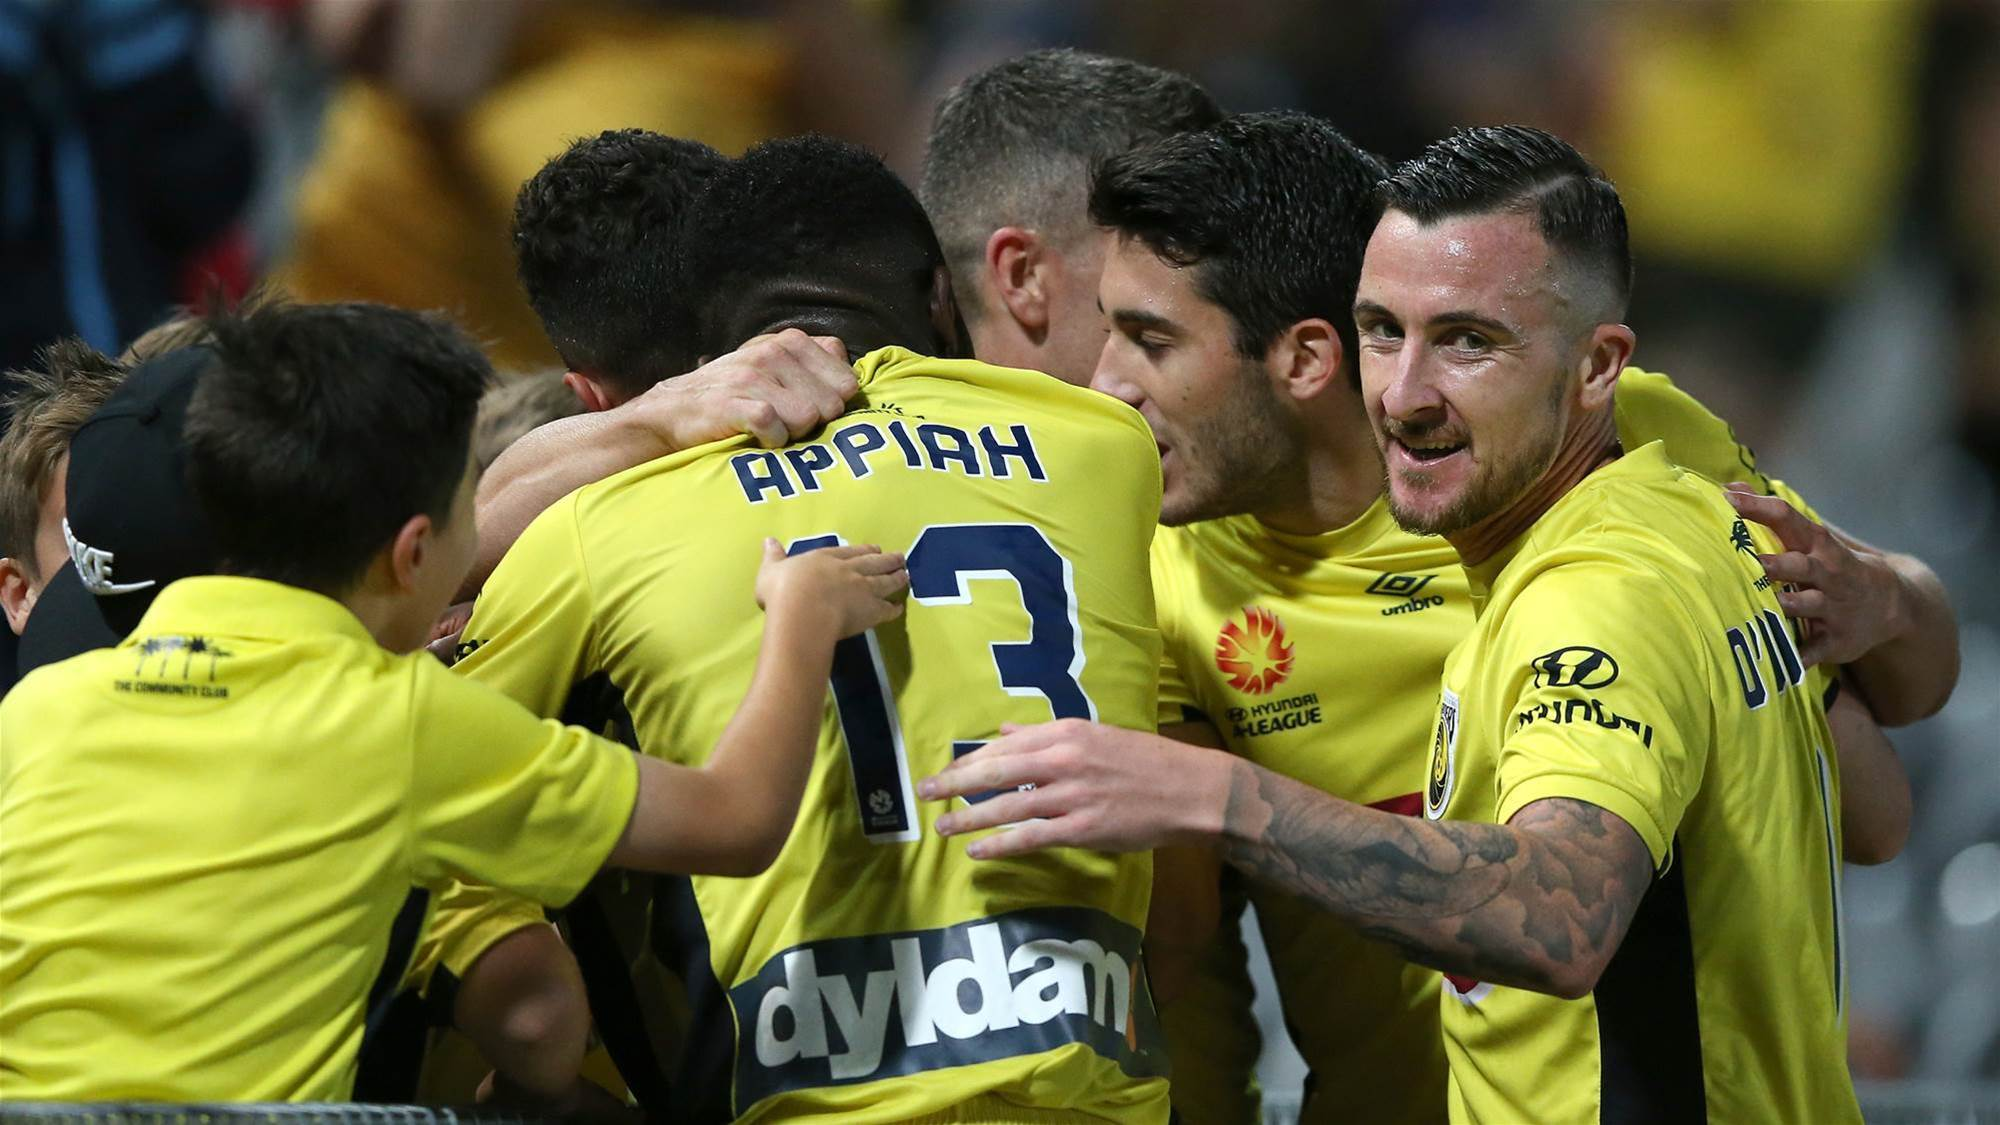 Derby Pain as Mariners dump Jets to last